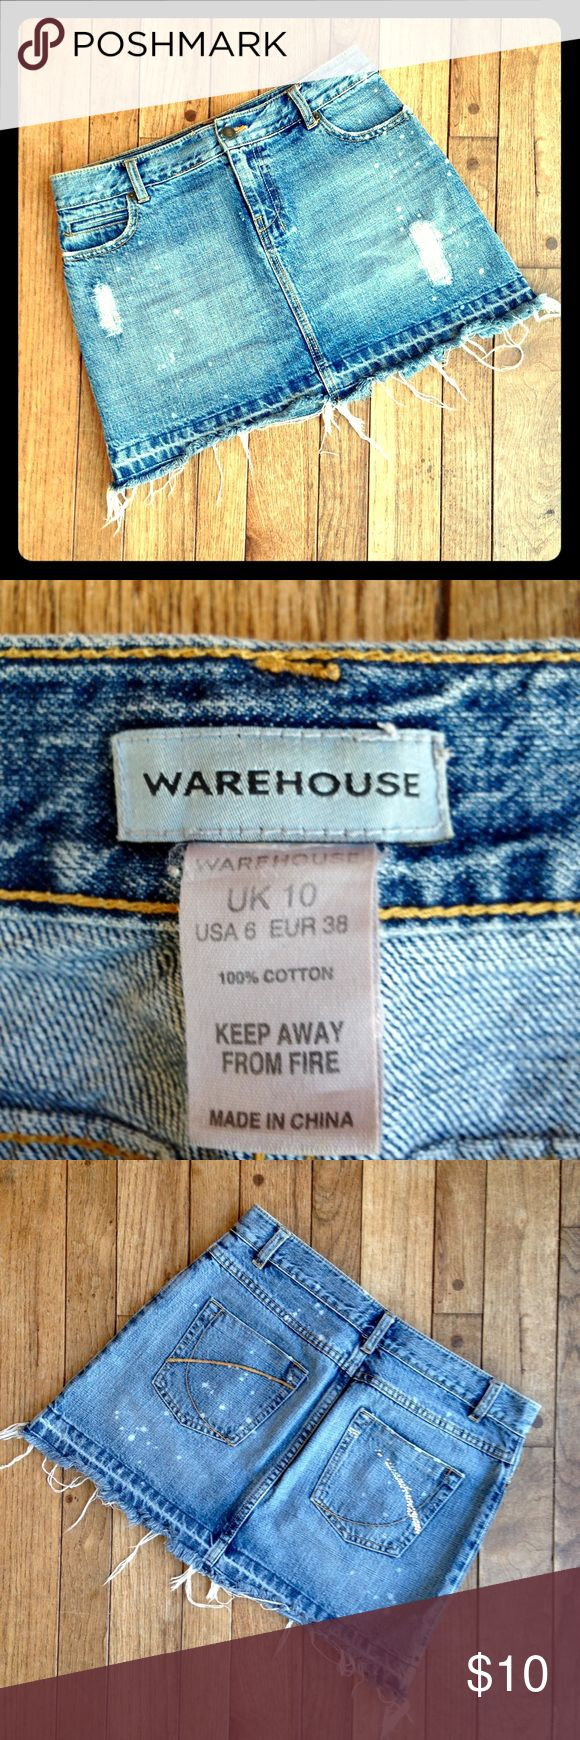 """Warehouse U.K. Distressed Jean skirt w/broken hem W-31. L-14"""". Medium wash with lots of distressing, fading, bleached spots. Broken hem with strings hanging down. I wish this still fit me!  I loved wearing it in the summer when my legs were tan!  Sparkly rhinestones on one pocket.  Quite a few are missing. ☹️ Warehouse UK Skirts Mini"""